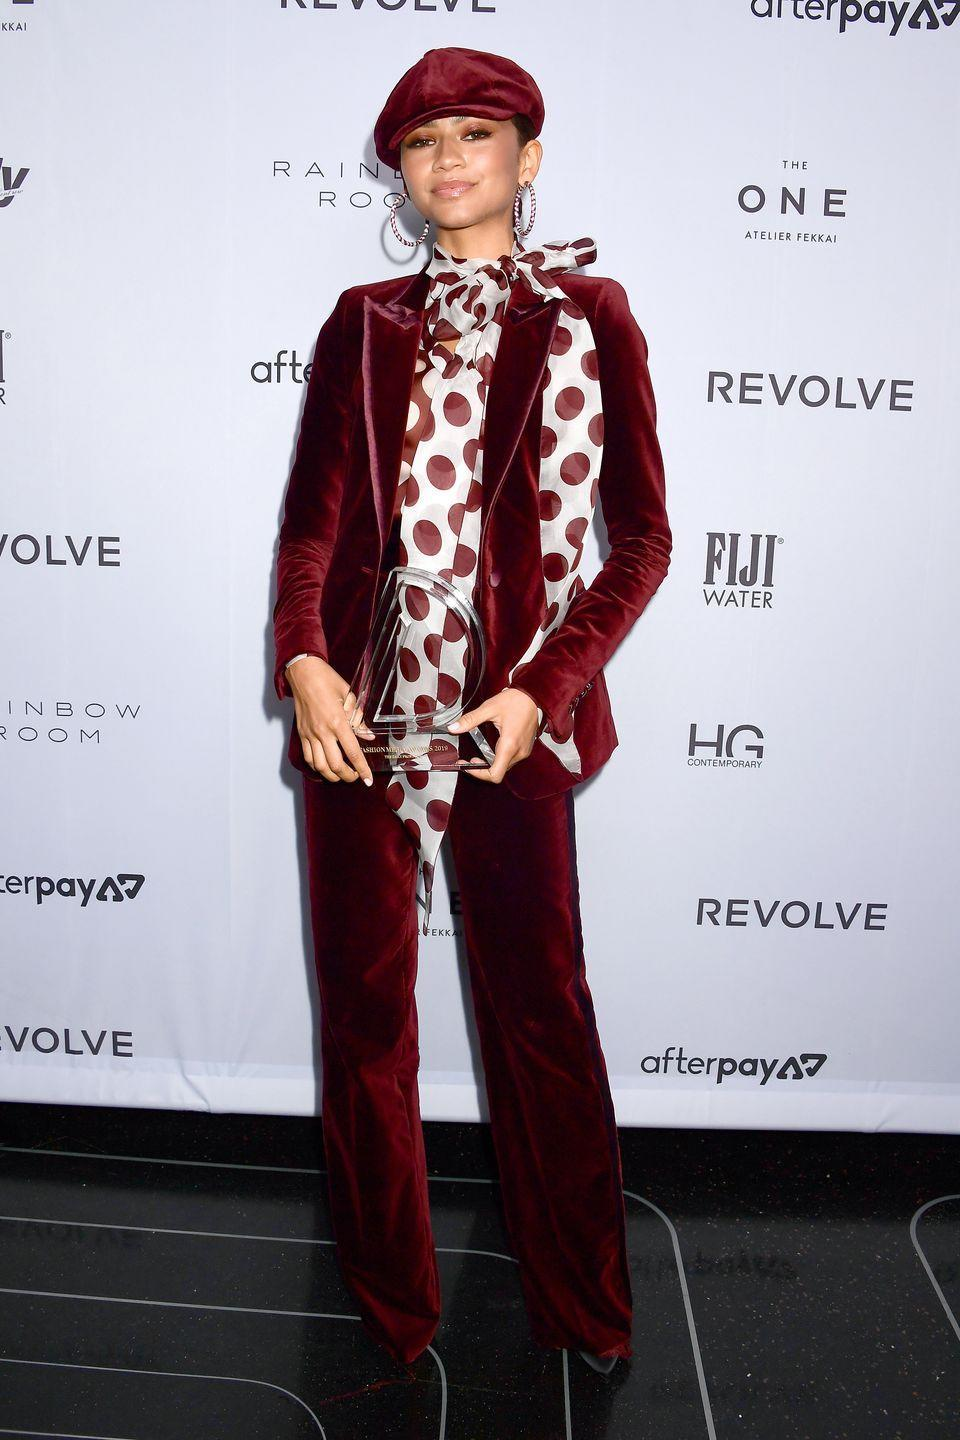 <p>Here's Zendaya wearing, well, Zendaya. At the <em>Daily Front Row</em> Awards, she shut it down in this funky velvet suit from her own collaborative line with Tommy Hilfiger.</p>